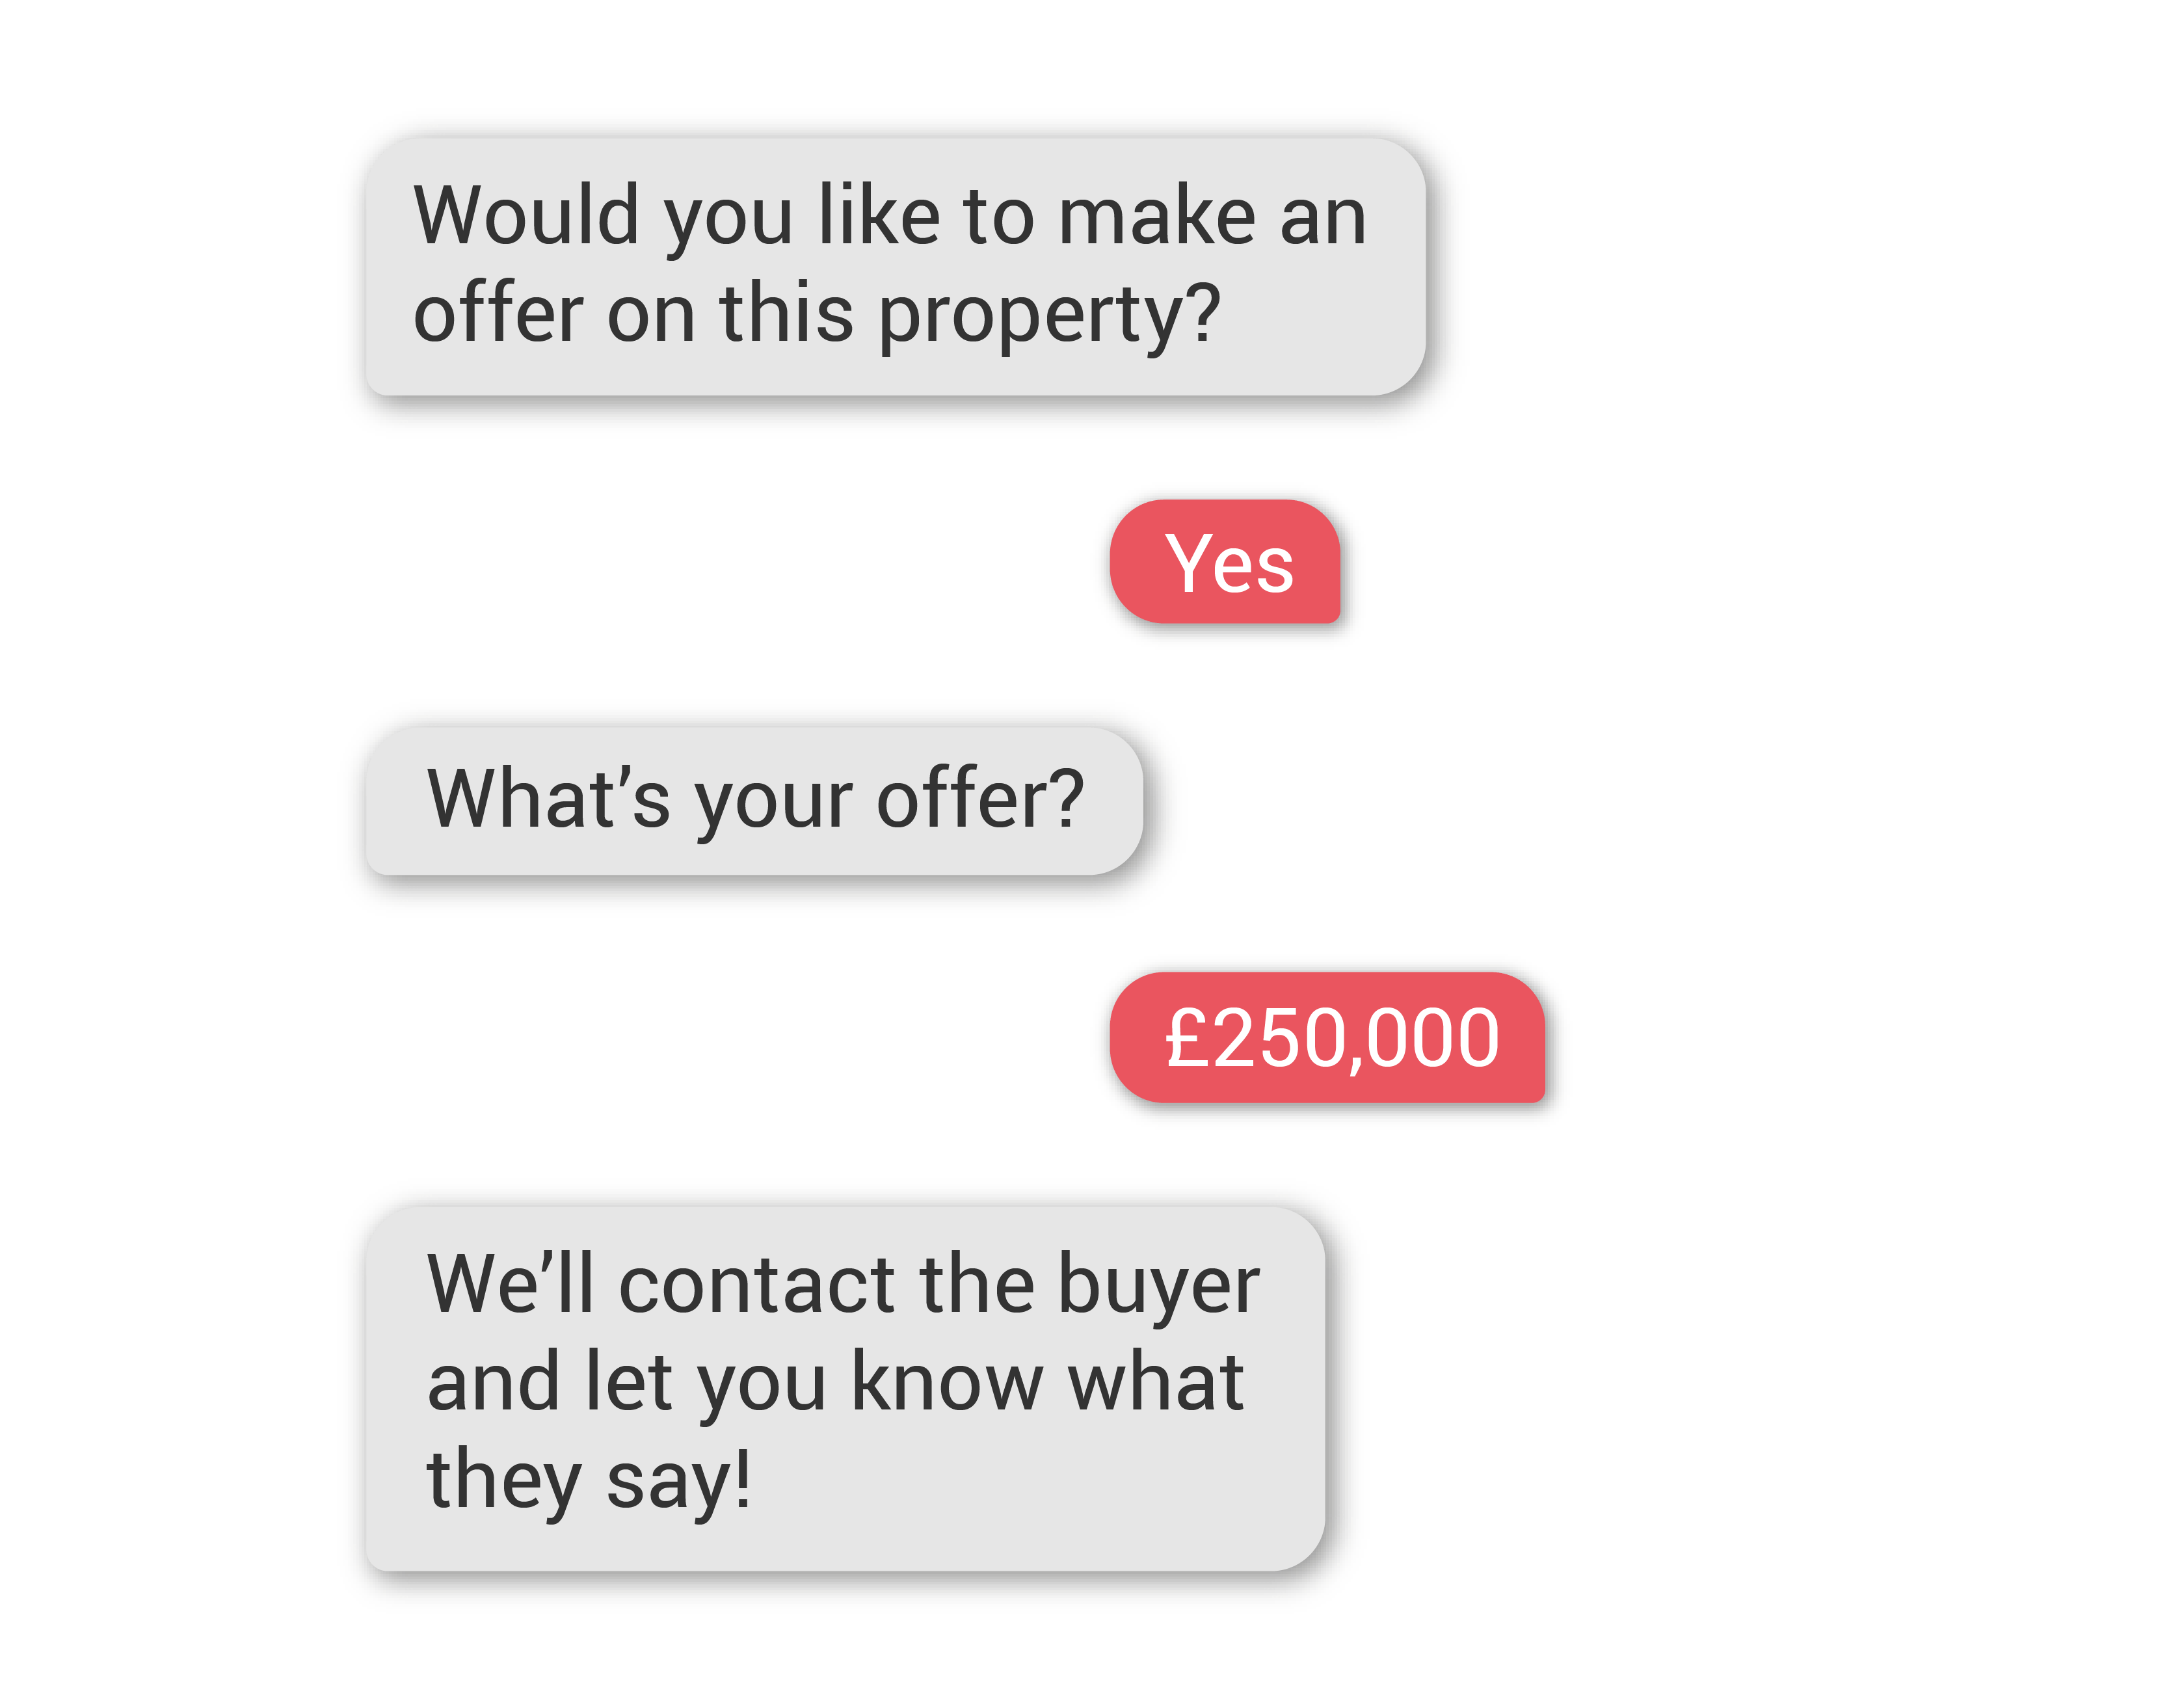 Property sales: making an offer via an ai assistant